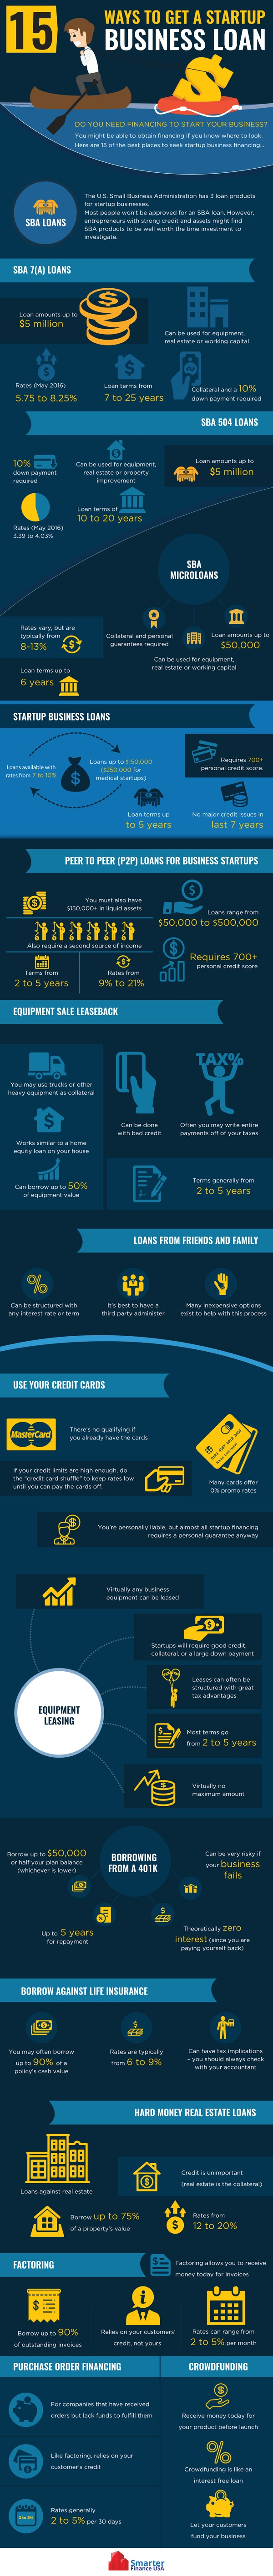 15 Ways to Get a Startup Business Loan